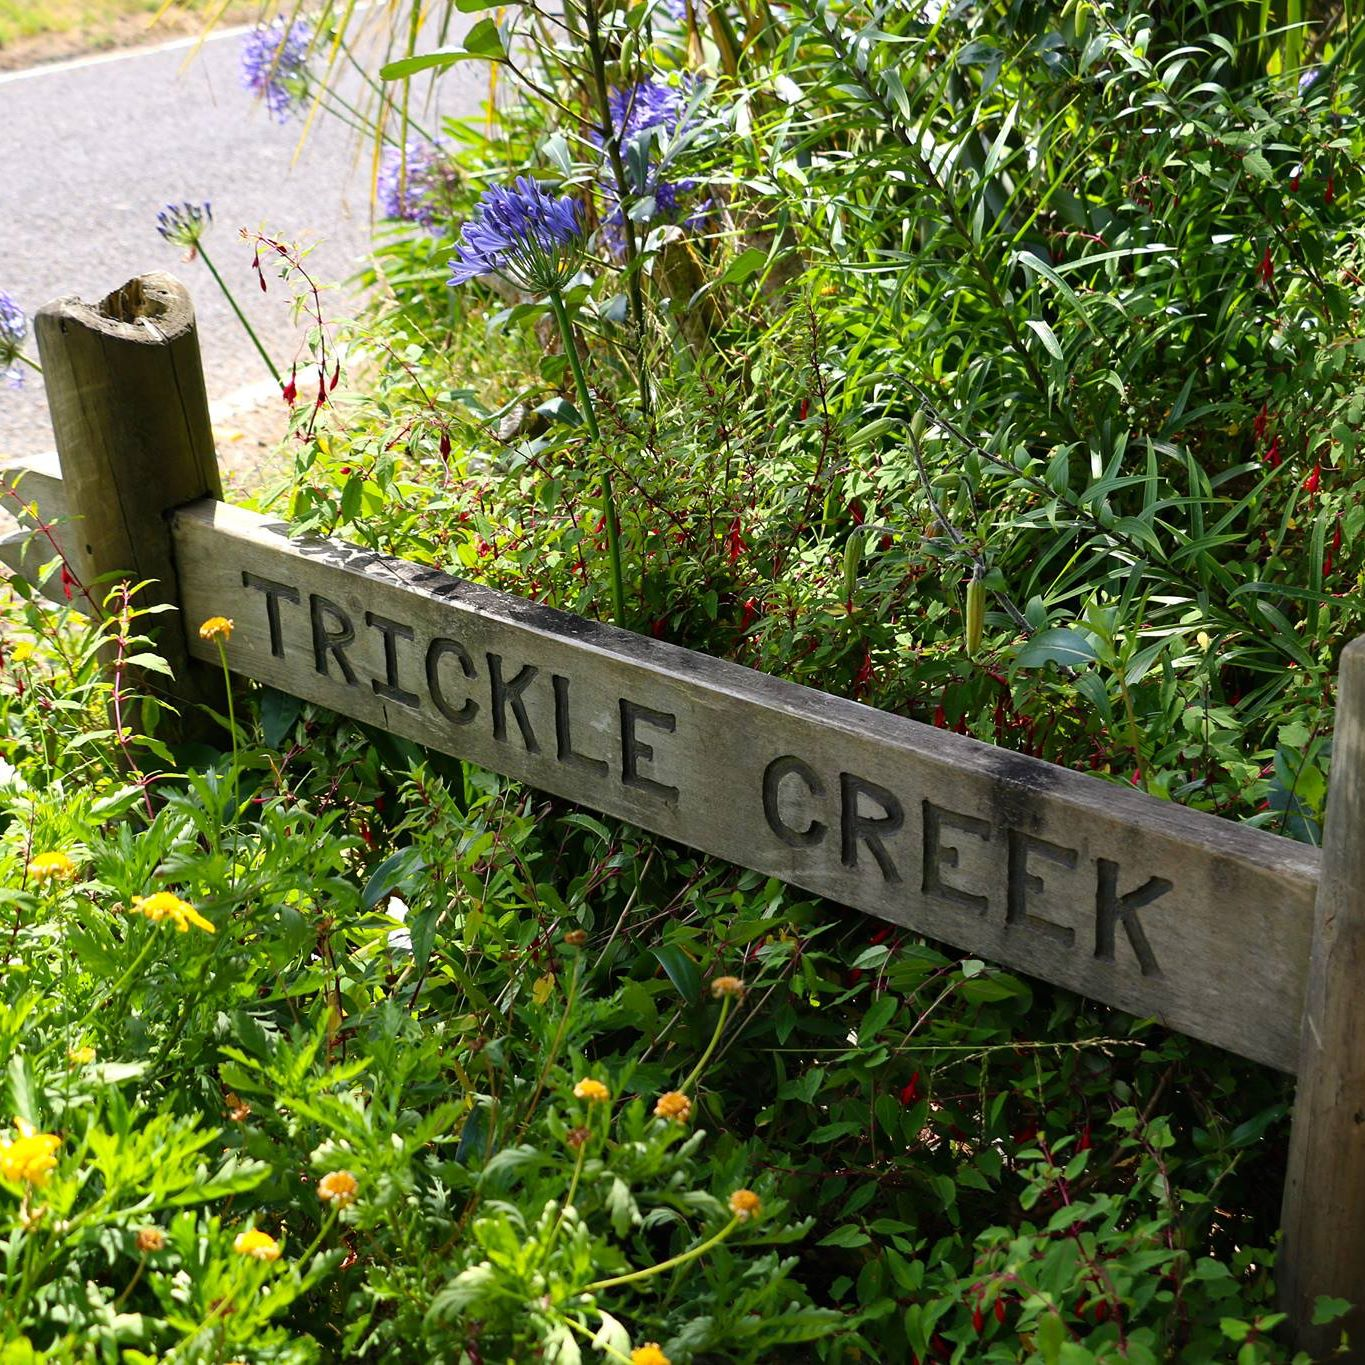 Trickle Creek